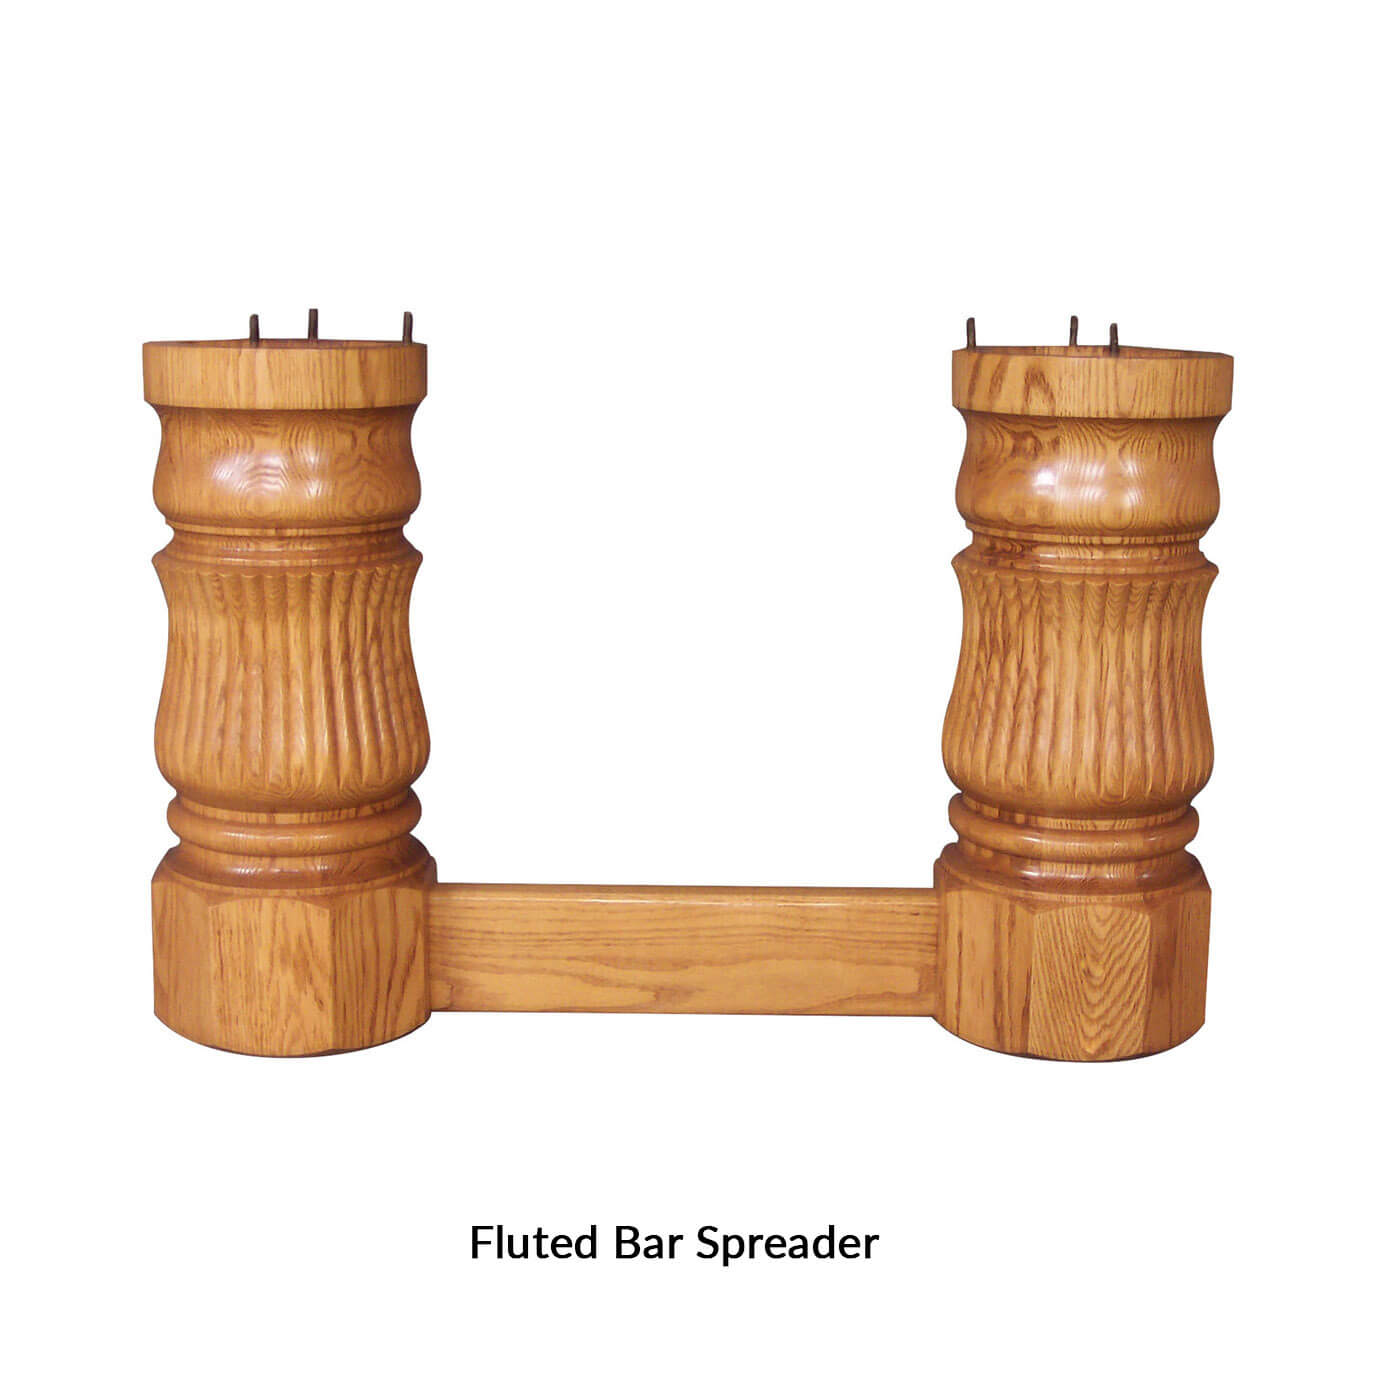 7.0-fluted-bar-spreader.jpg